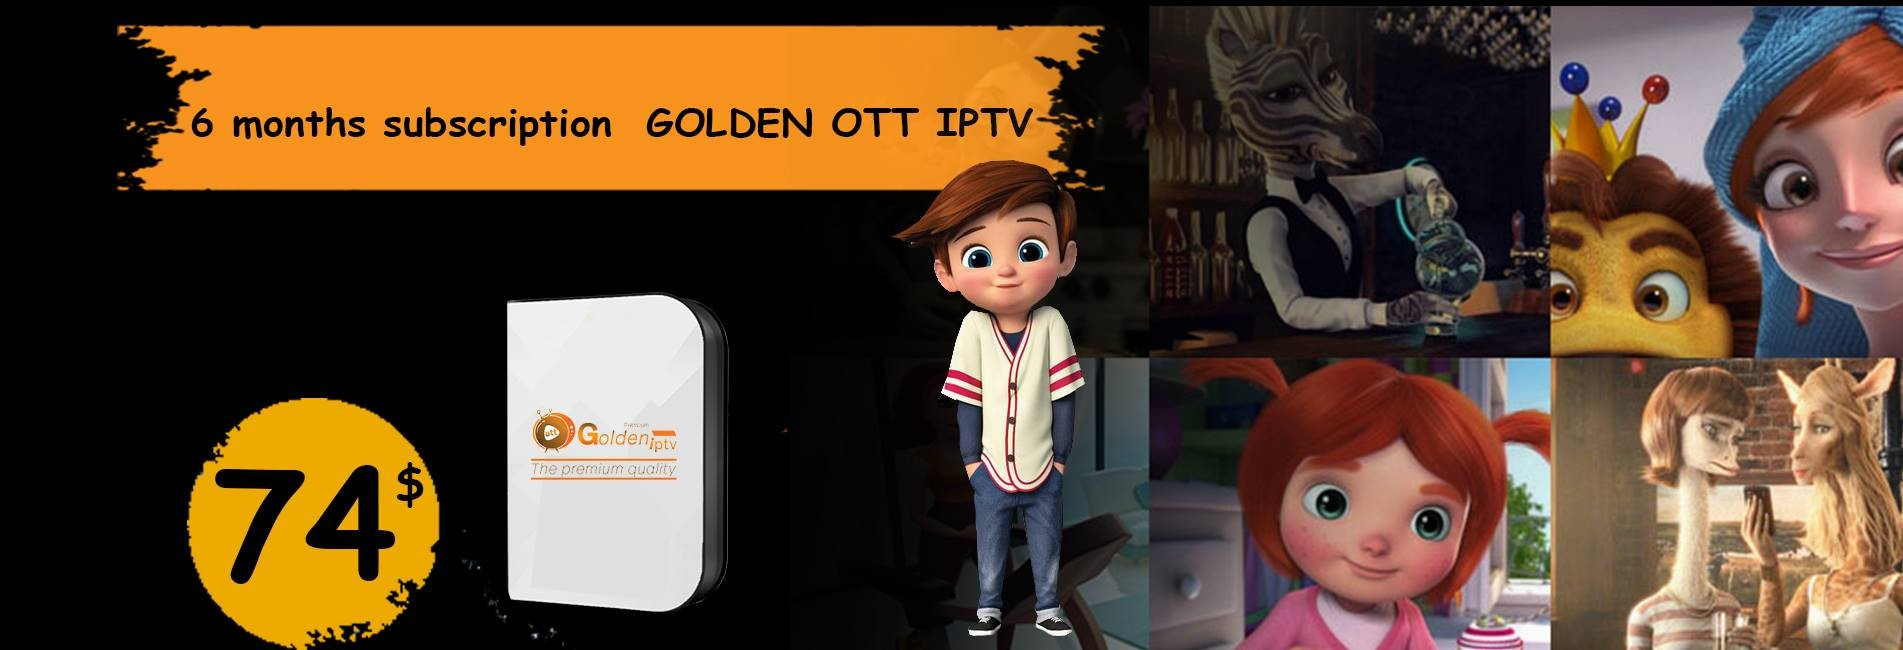 GOLDEN OTT IPTV